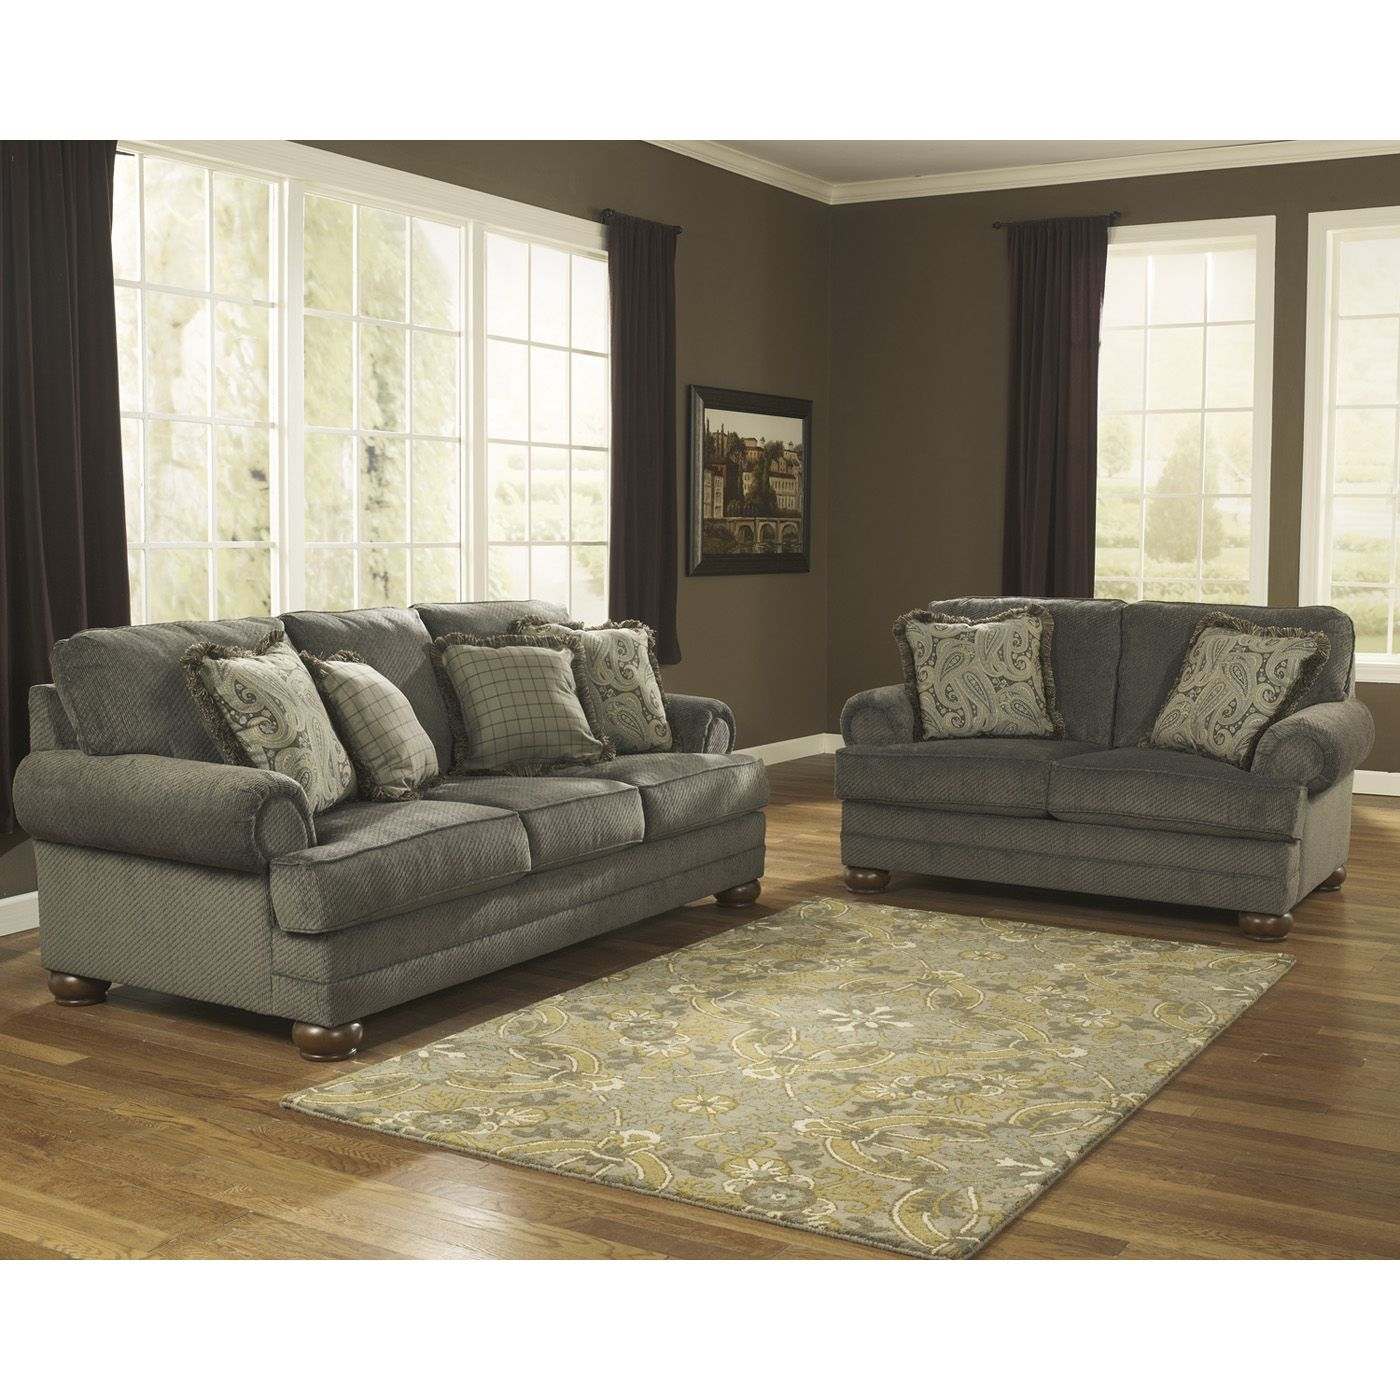 Living Room Furniture Jacksonville Nc signature designashley 7400538 parcal estates sofa | big move